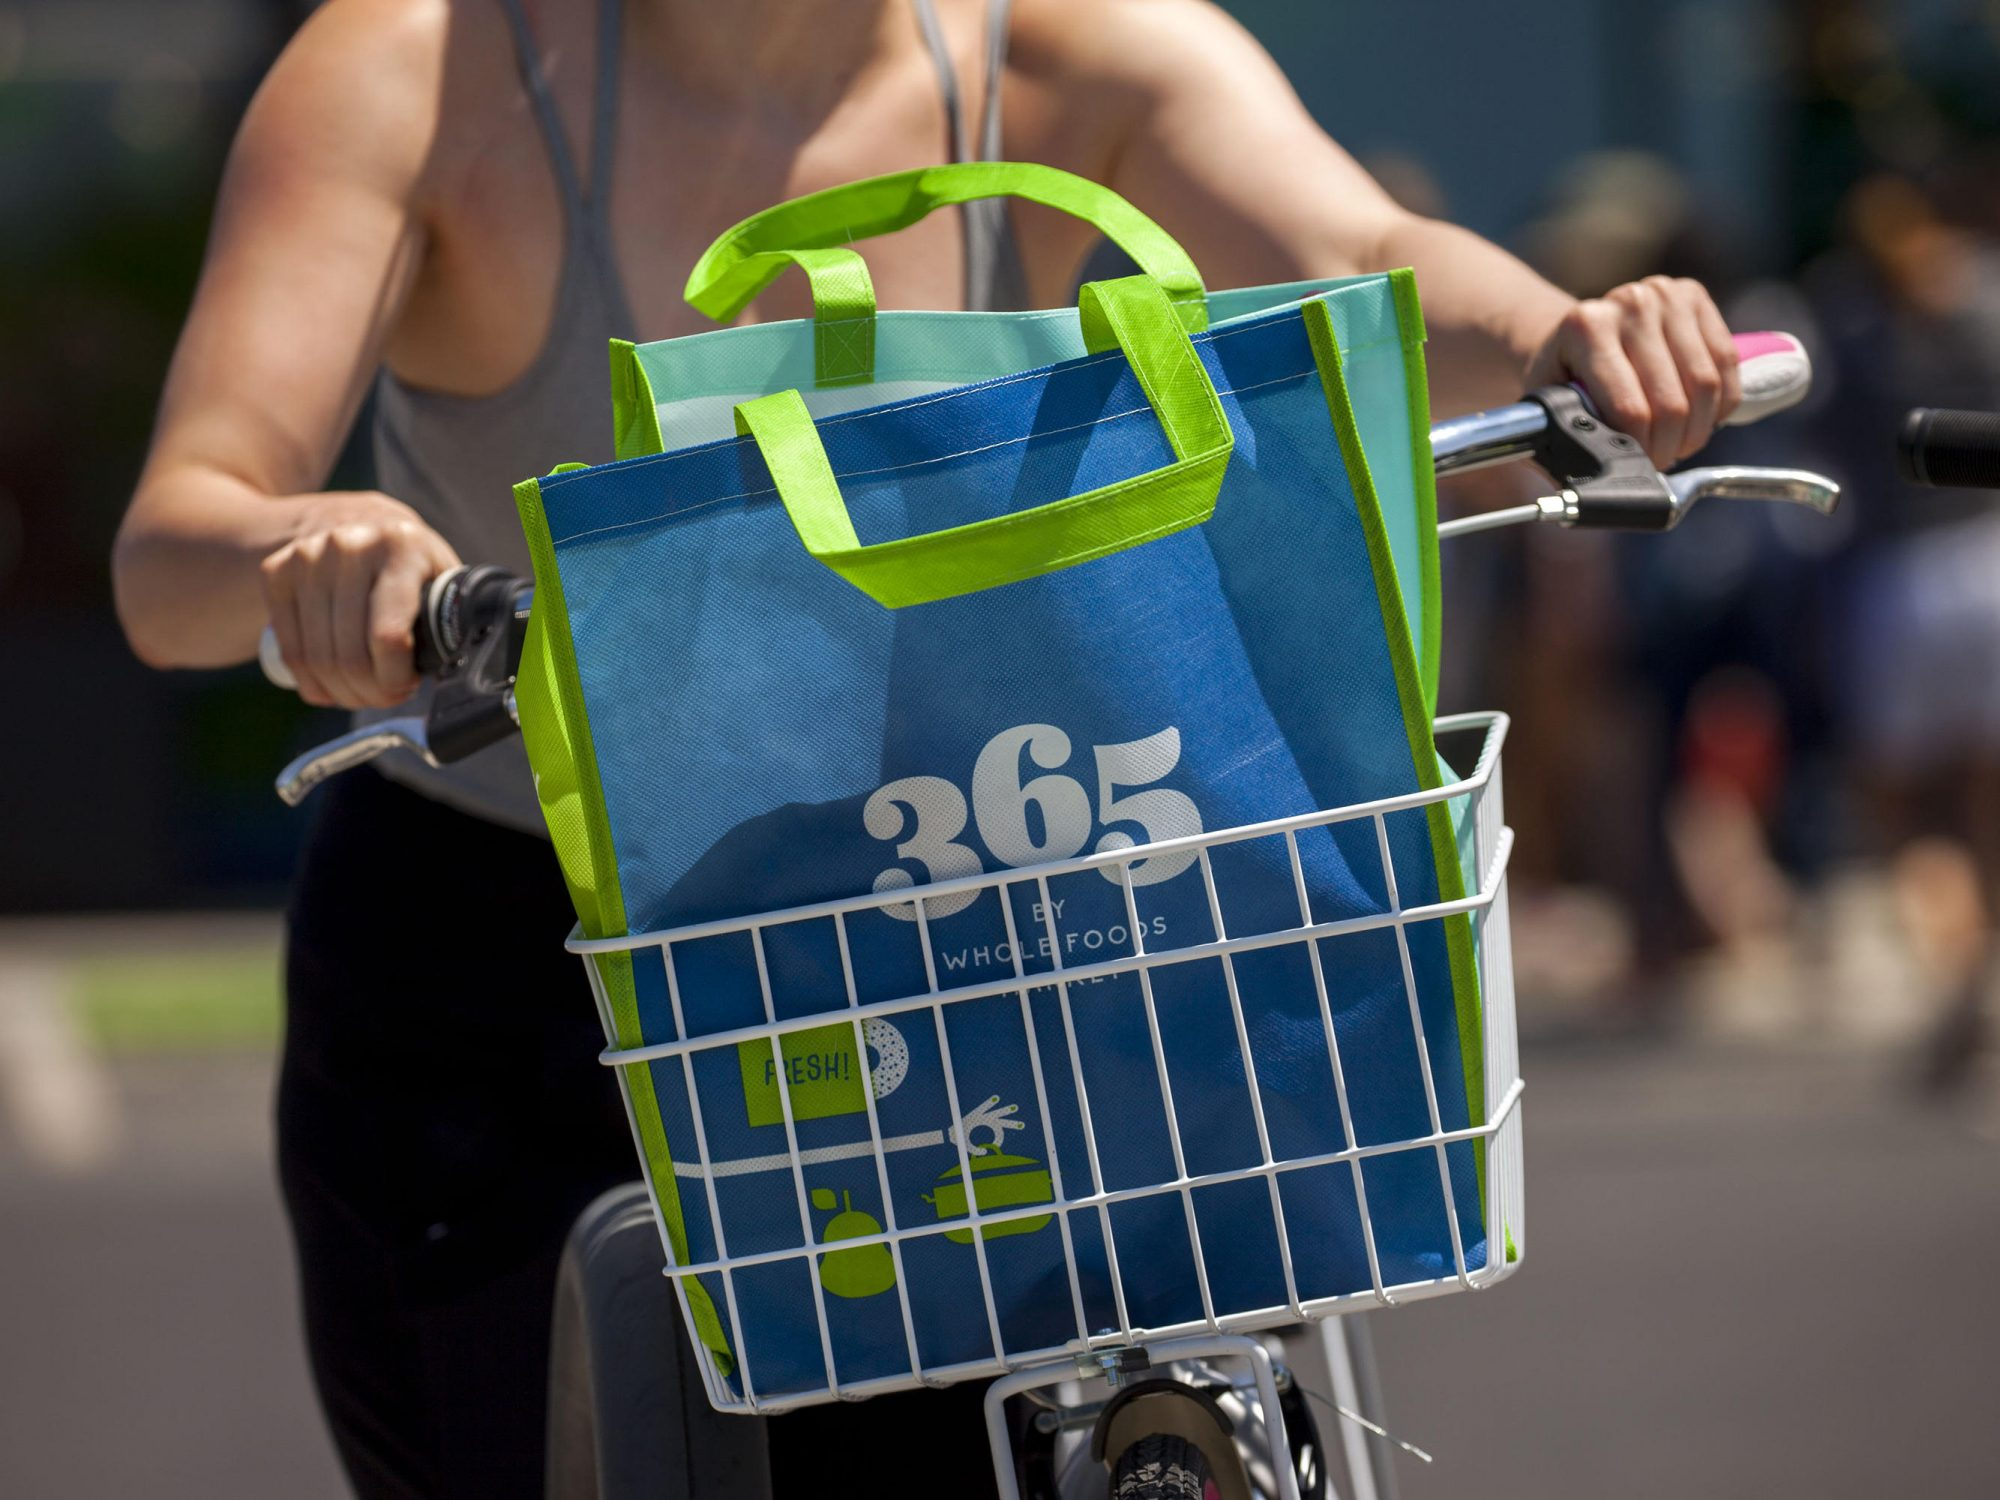 Leaving Groceries in a Hot Car Is Extremely Risky 1710w-Reusable-Shopping-Bag-Whole-Foods